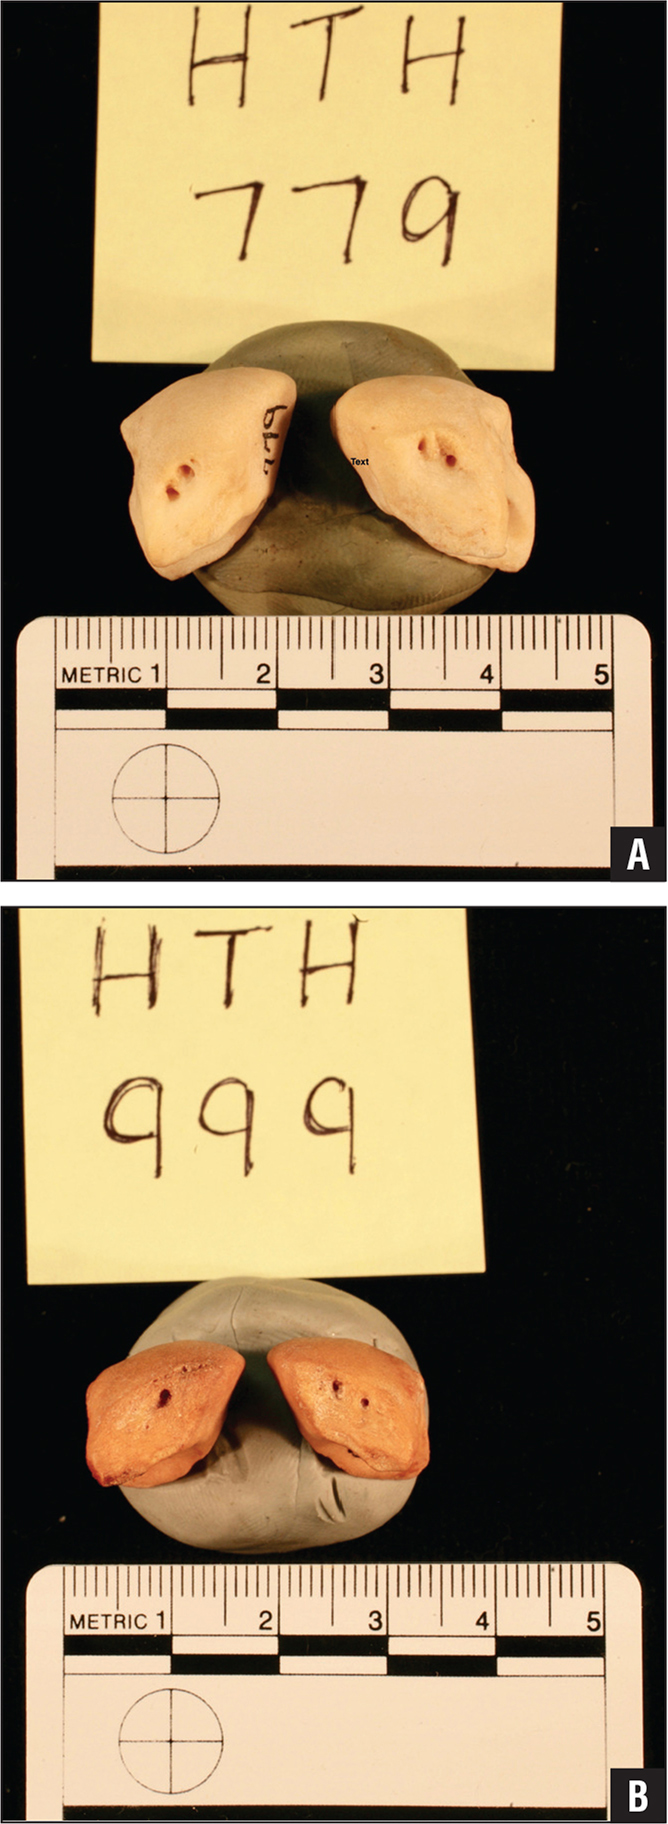 Posterior view photographs of the nutrient artery foramina of the right and left lunate bones from the dorsal aspect in 2 randomly selected specimens: HTH 779 (A) and HTH 999 (B).